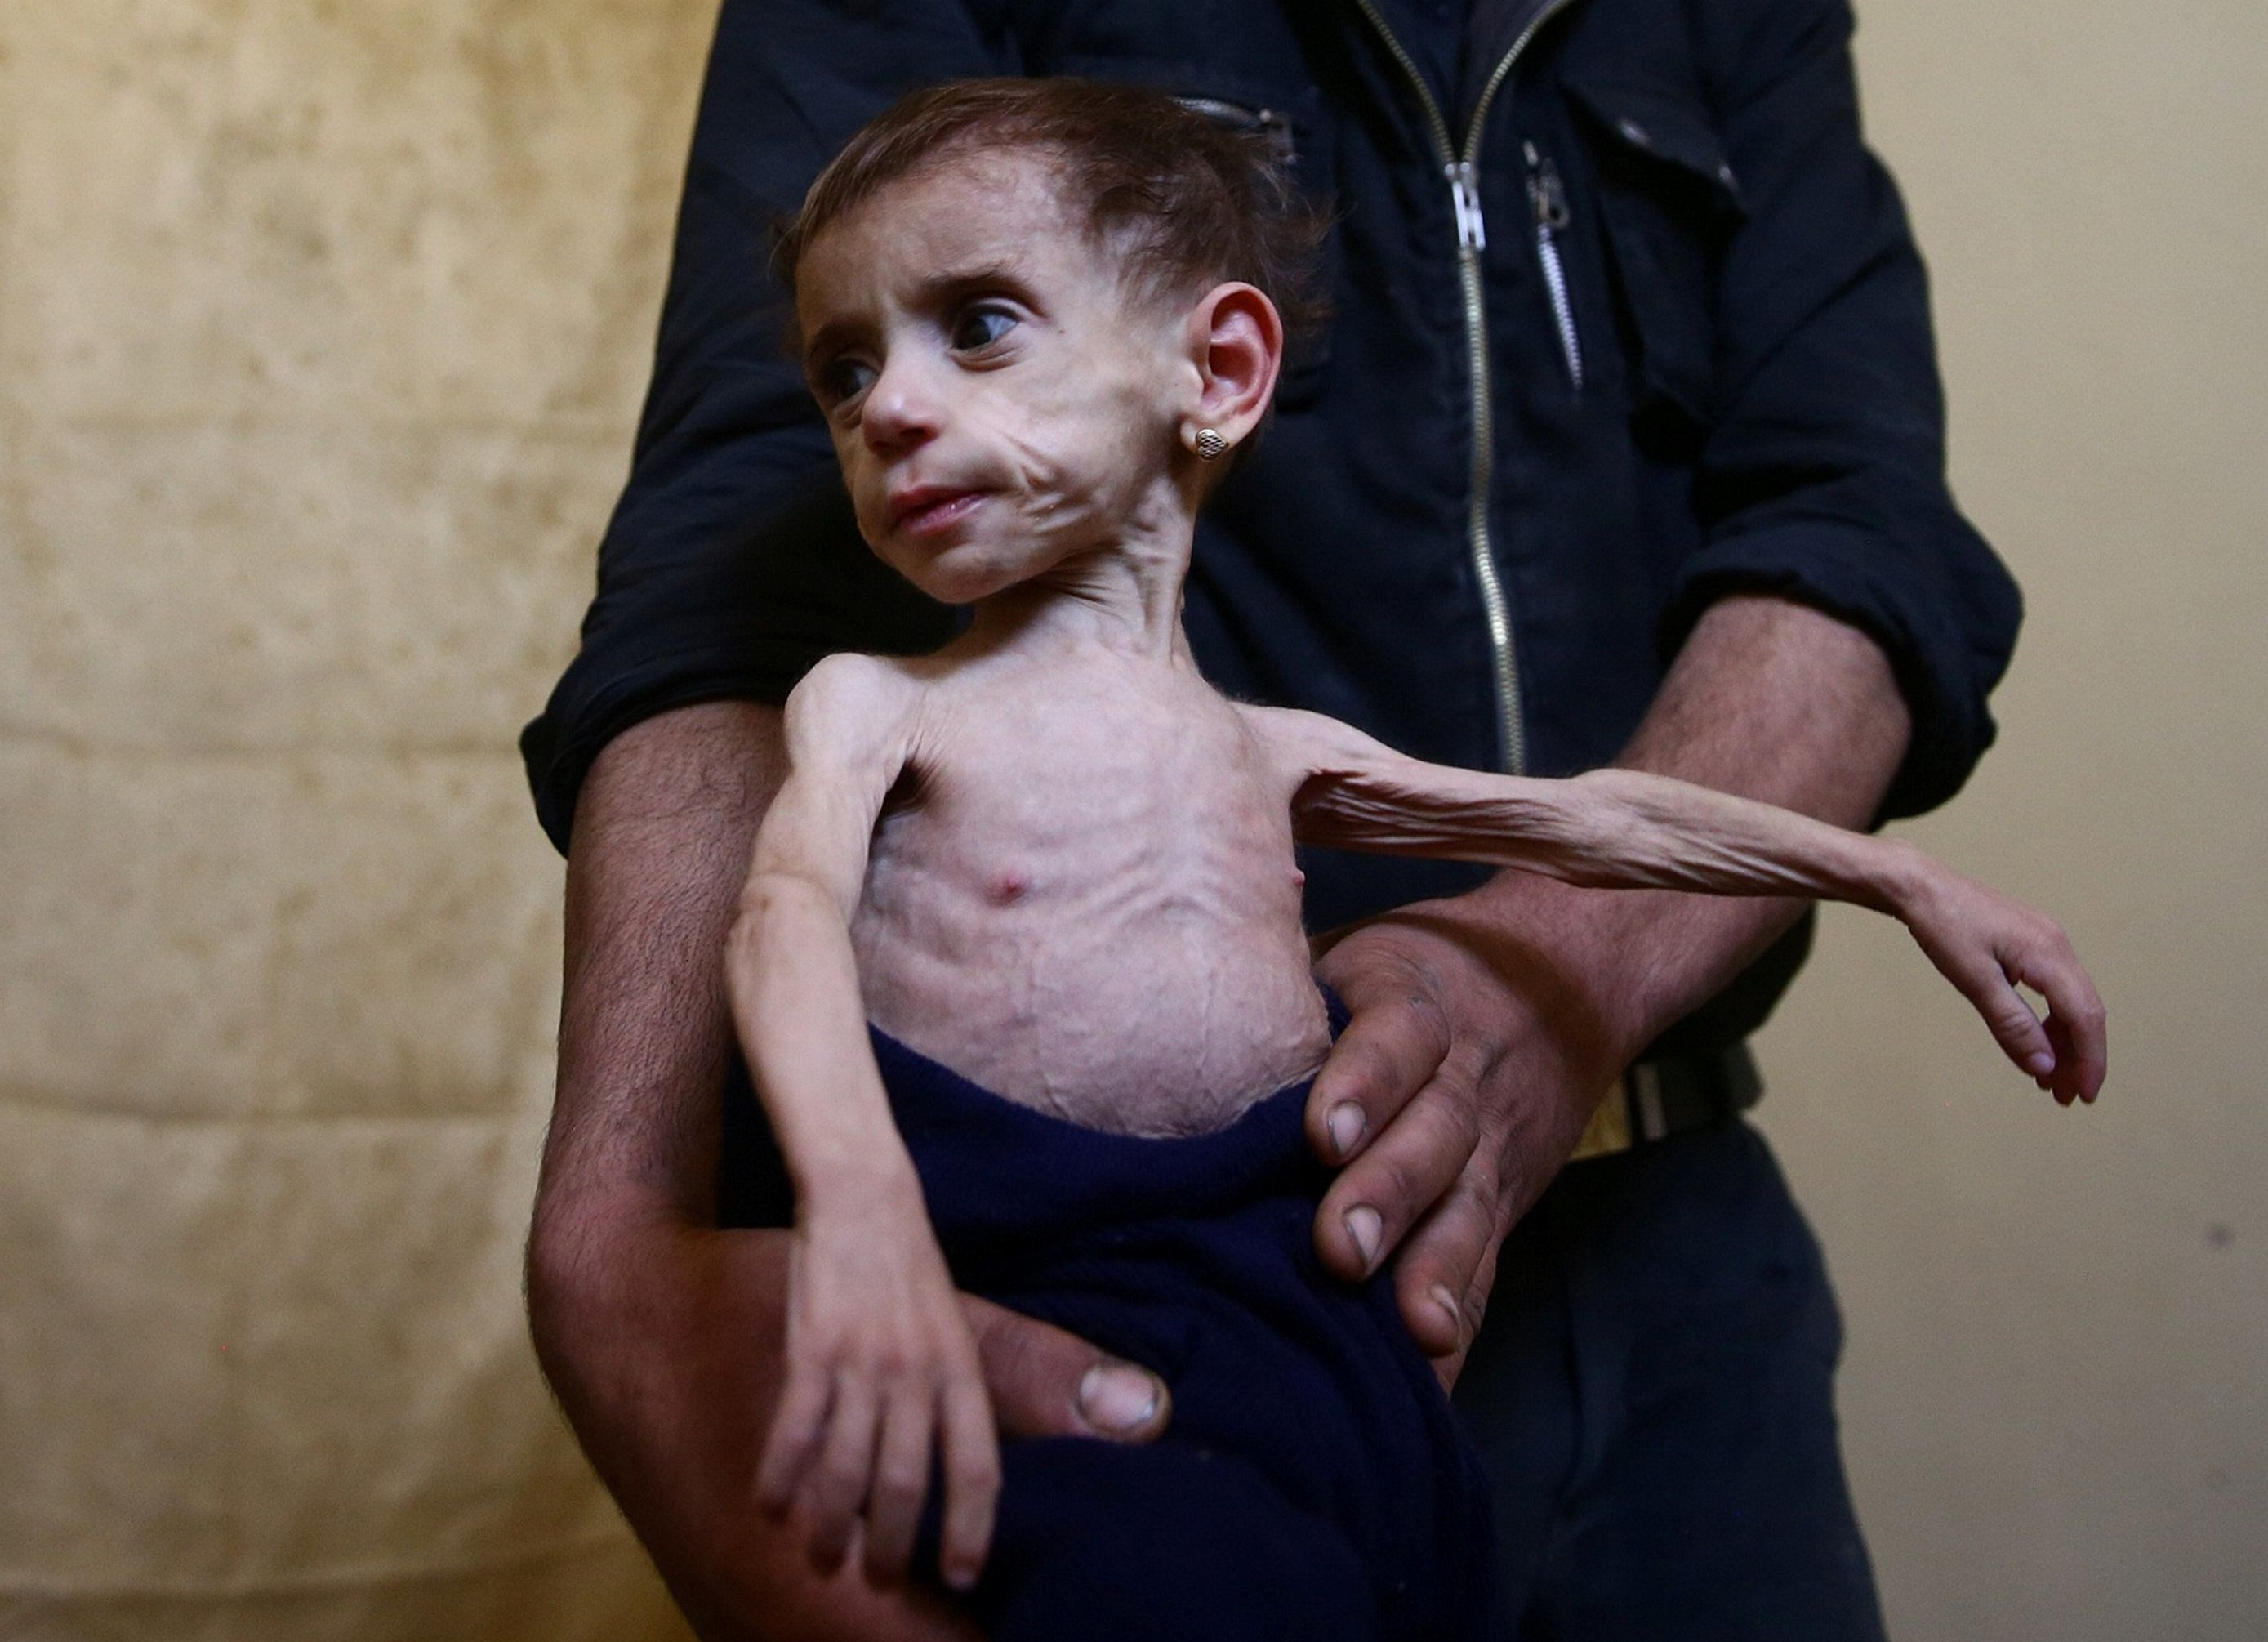 Hala al-Nufi, 2, shown here on Oct. 25, suffers from a metabolic disorder that is worsening due to the...